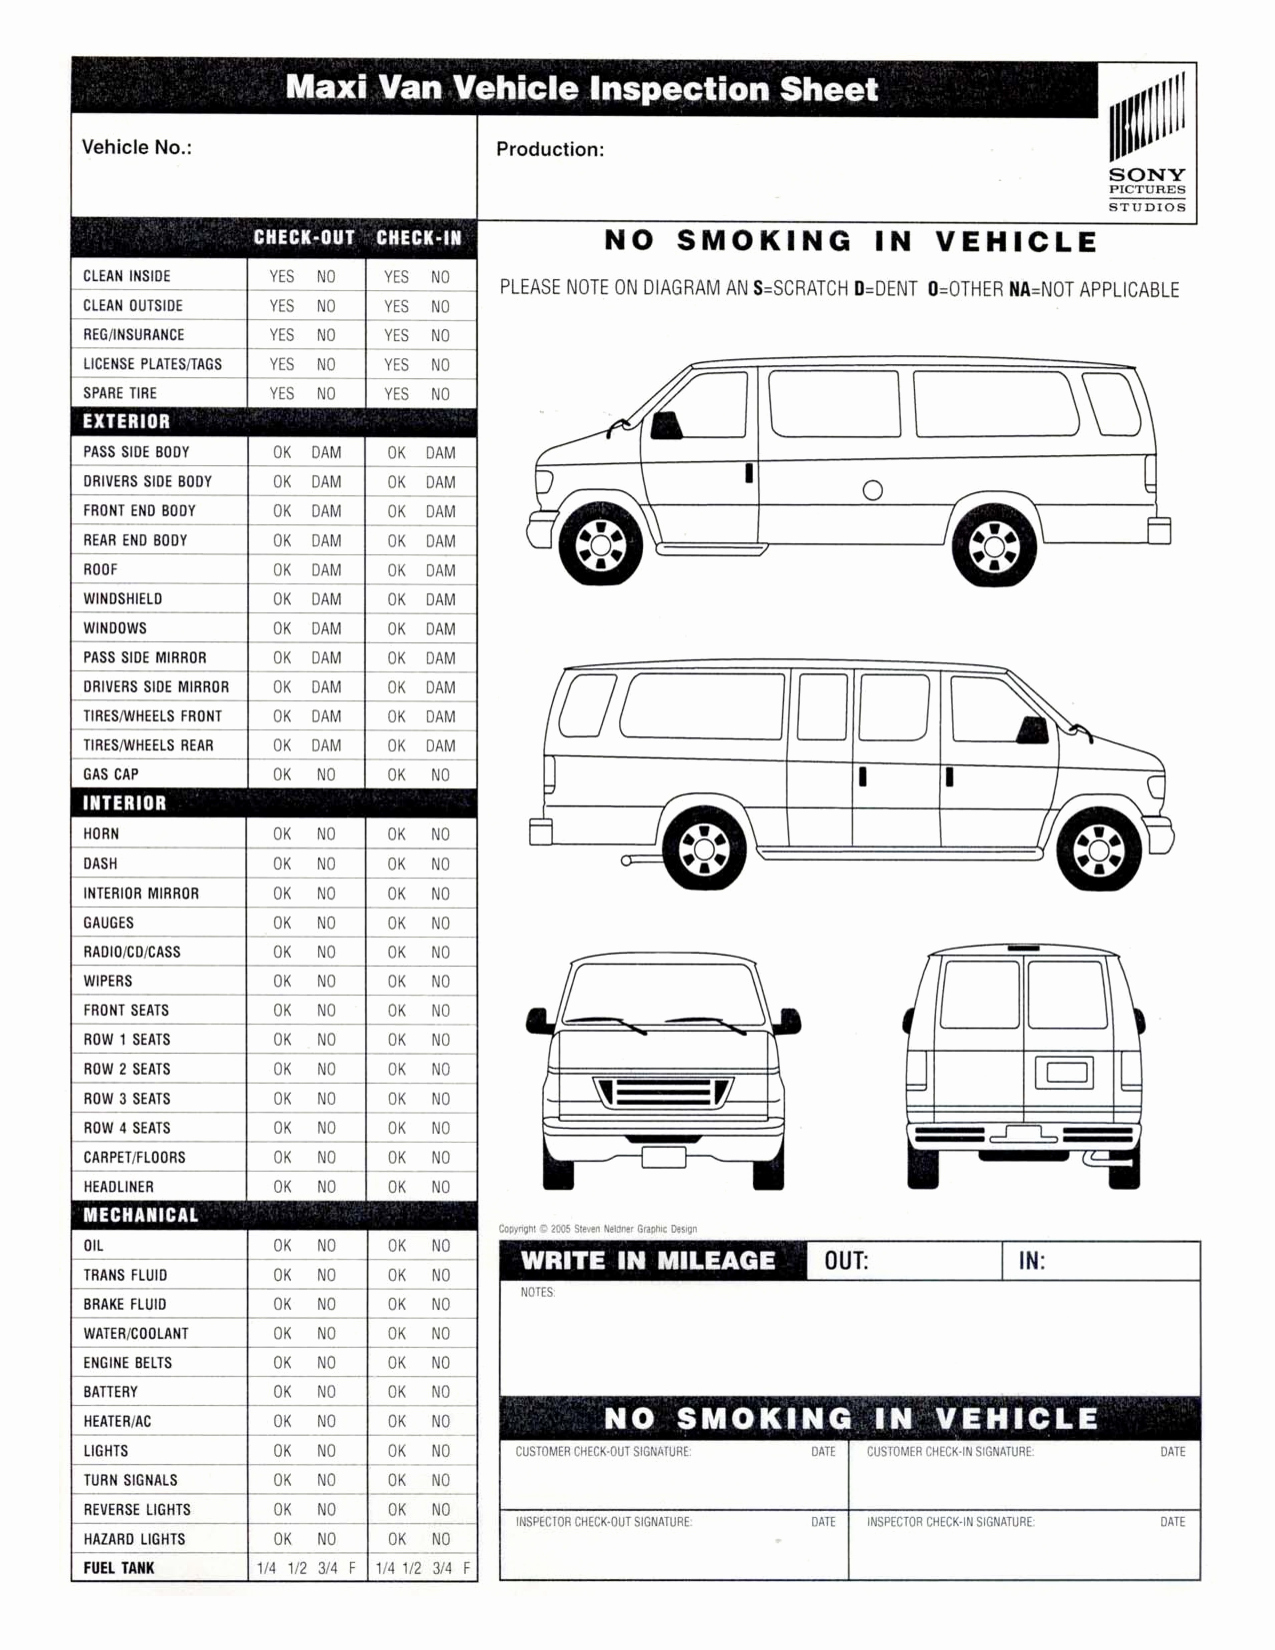 Vehicle Safety Inspection Checklist Template Awesome 9 Best Of Van Diagram Template Gmc Van Outline Templates Printable Venn Diagram